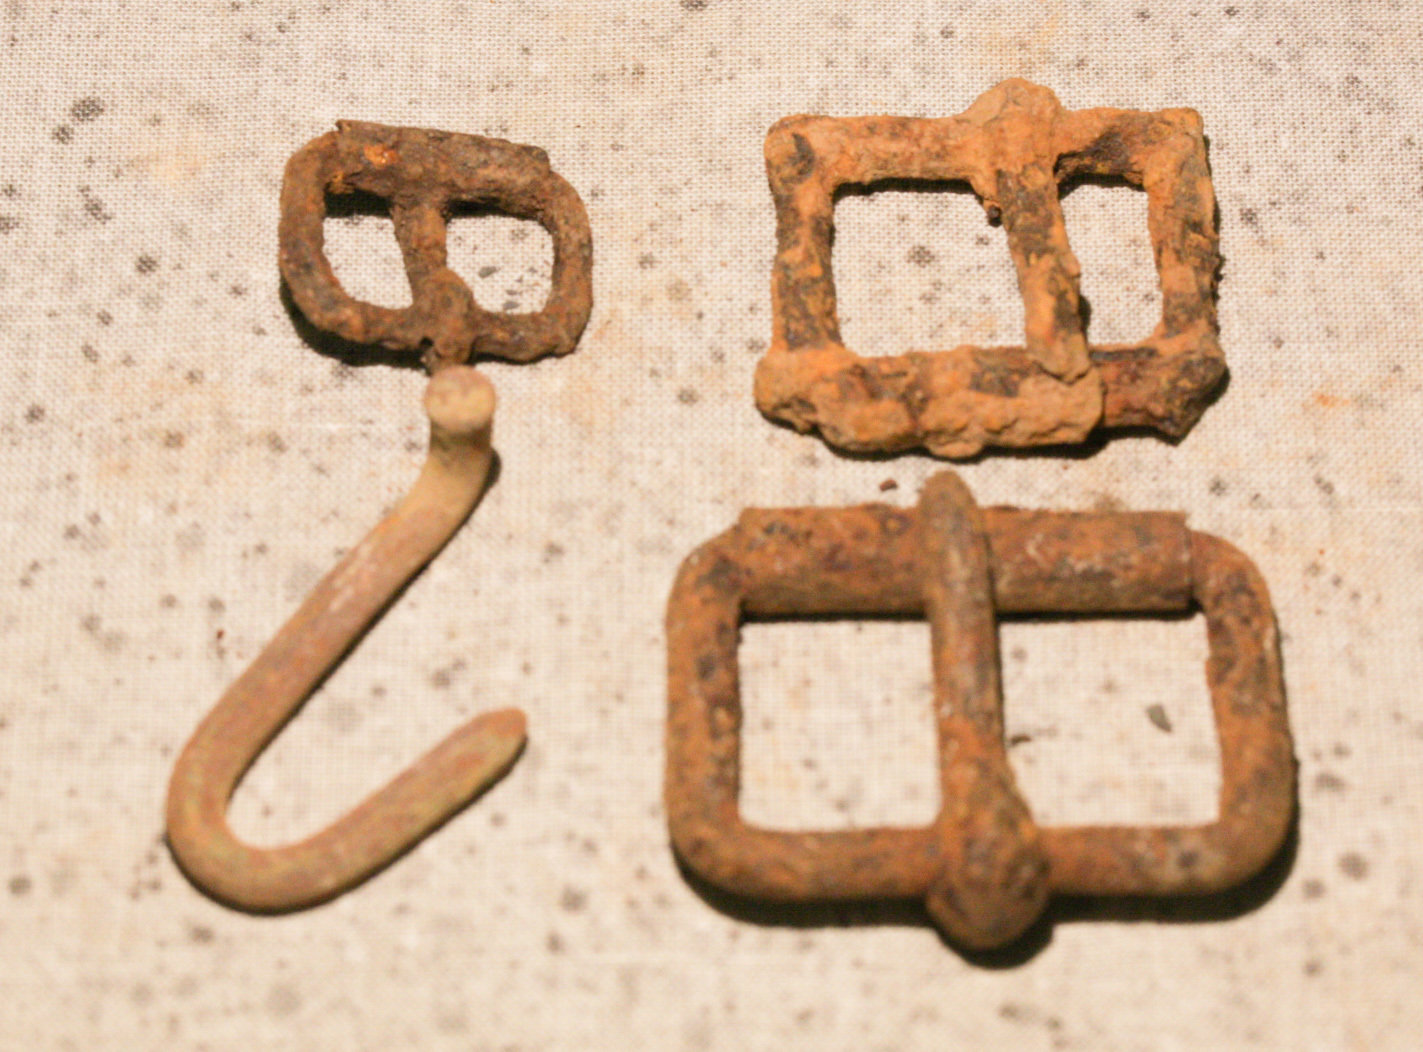 JUST ADDED ON 2/14 - THE BATTLE OF CEDAR CREEK - Three Roller Buckles & More WB-CCK38